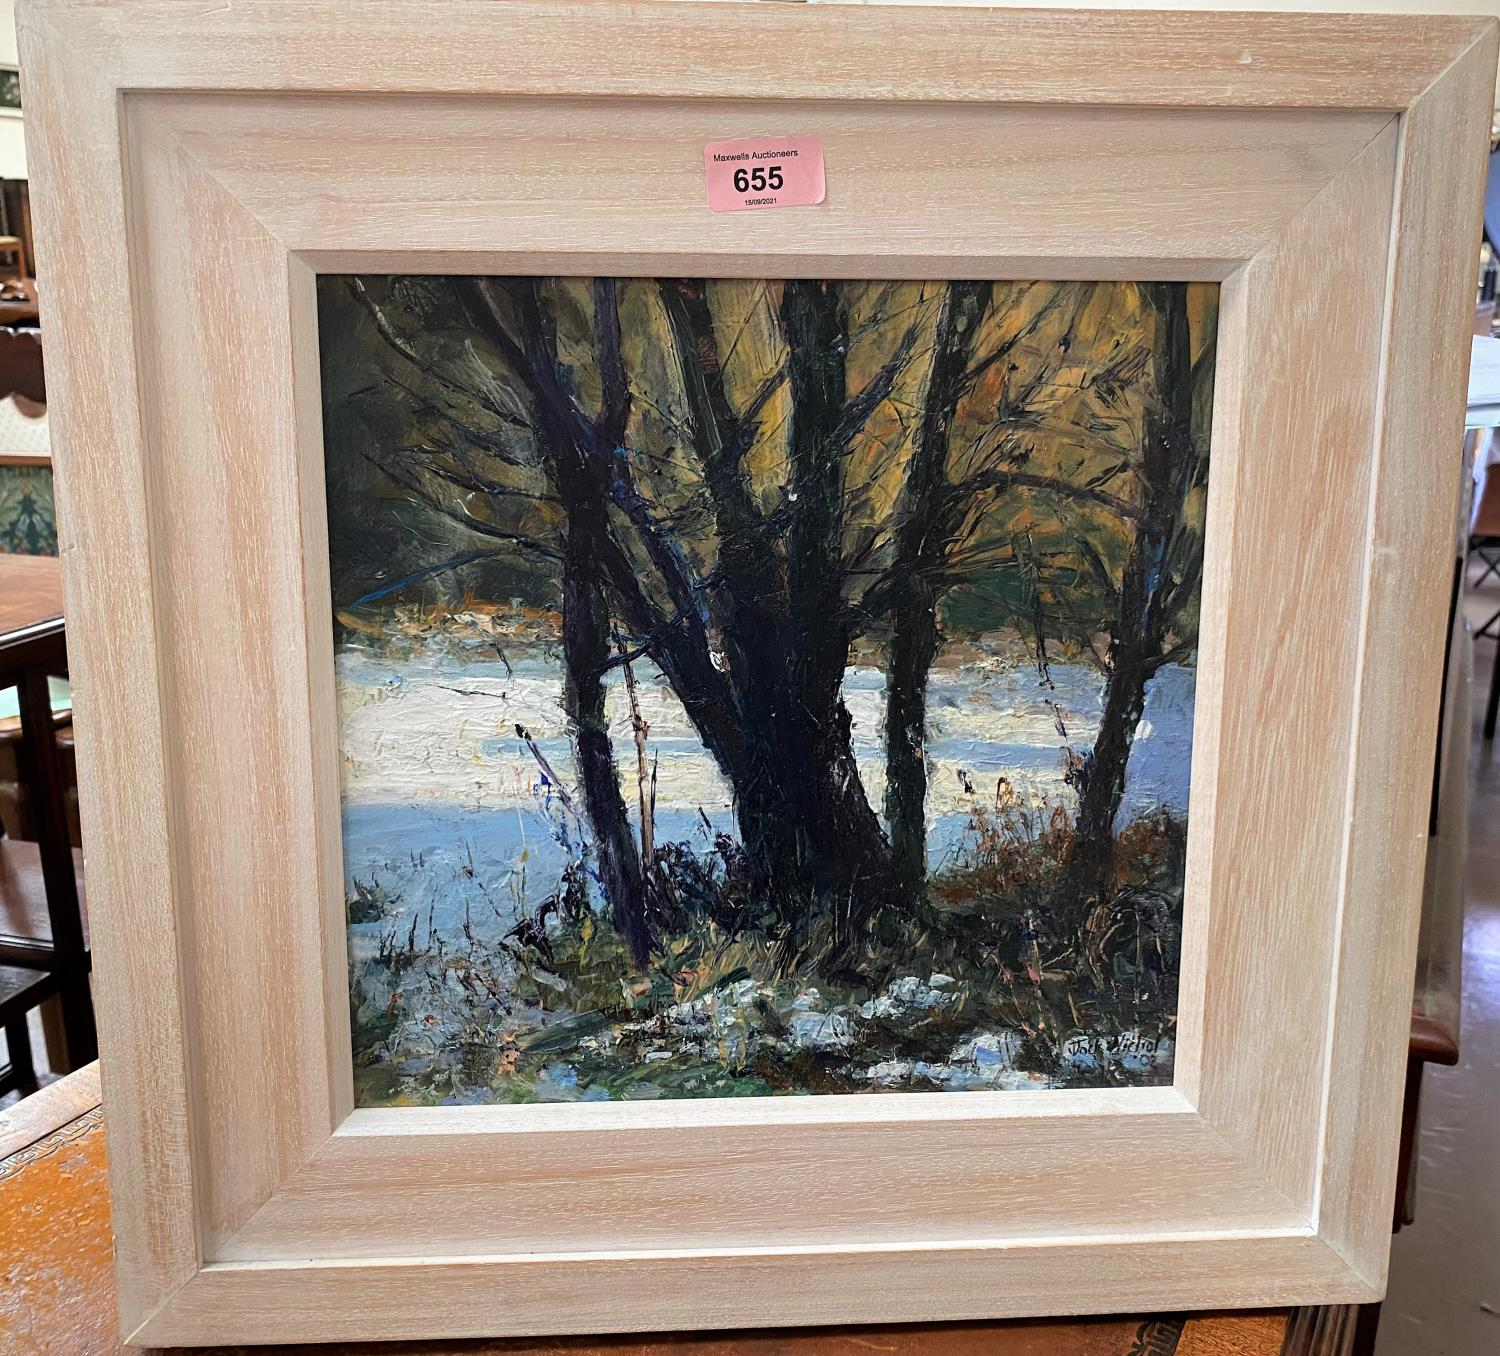 """Jock Nichol (1962) """"The Scent of Snow"""" Acrylic, signed. 30 x 29 cm framed (47 x 46cm overall)"""